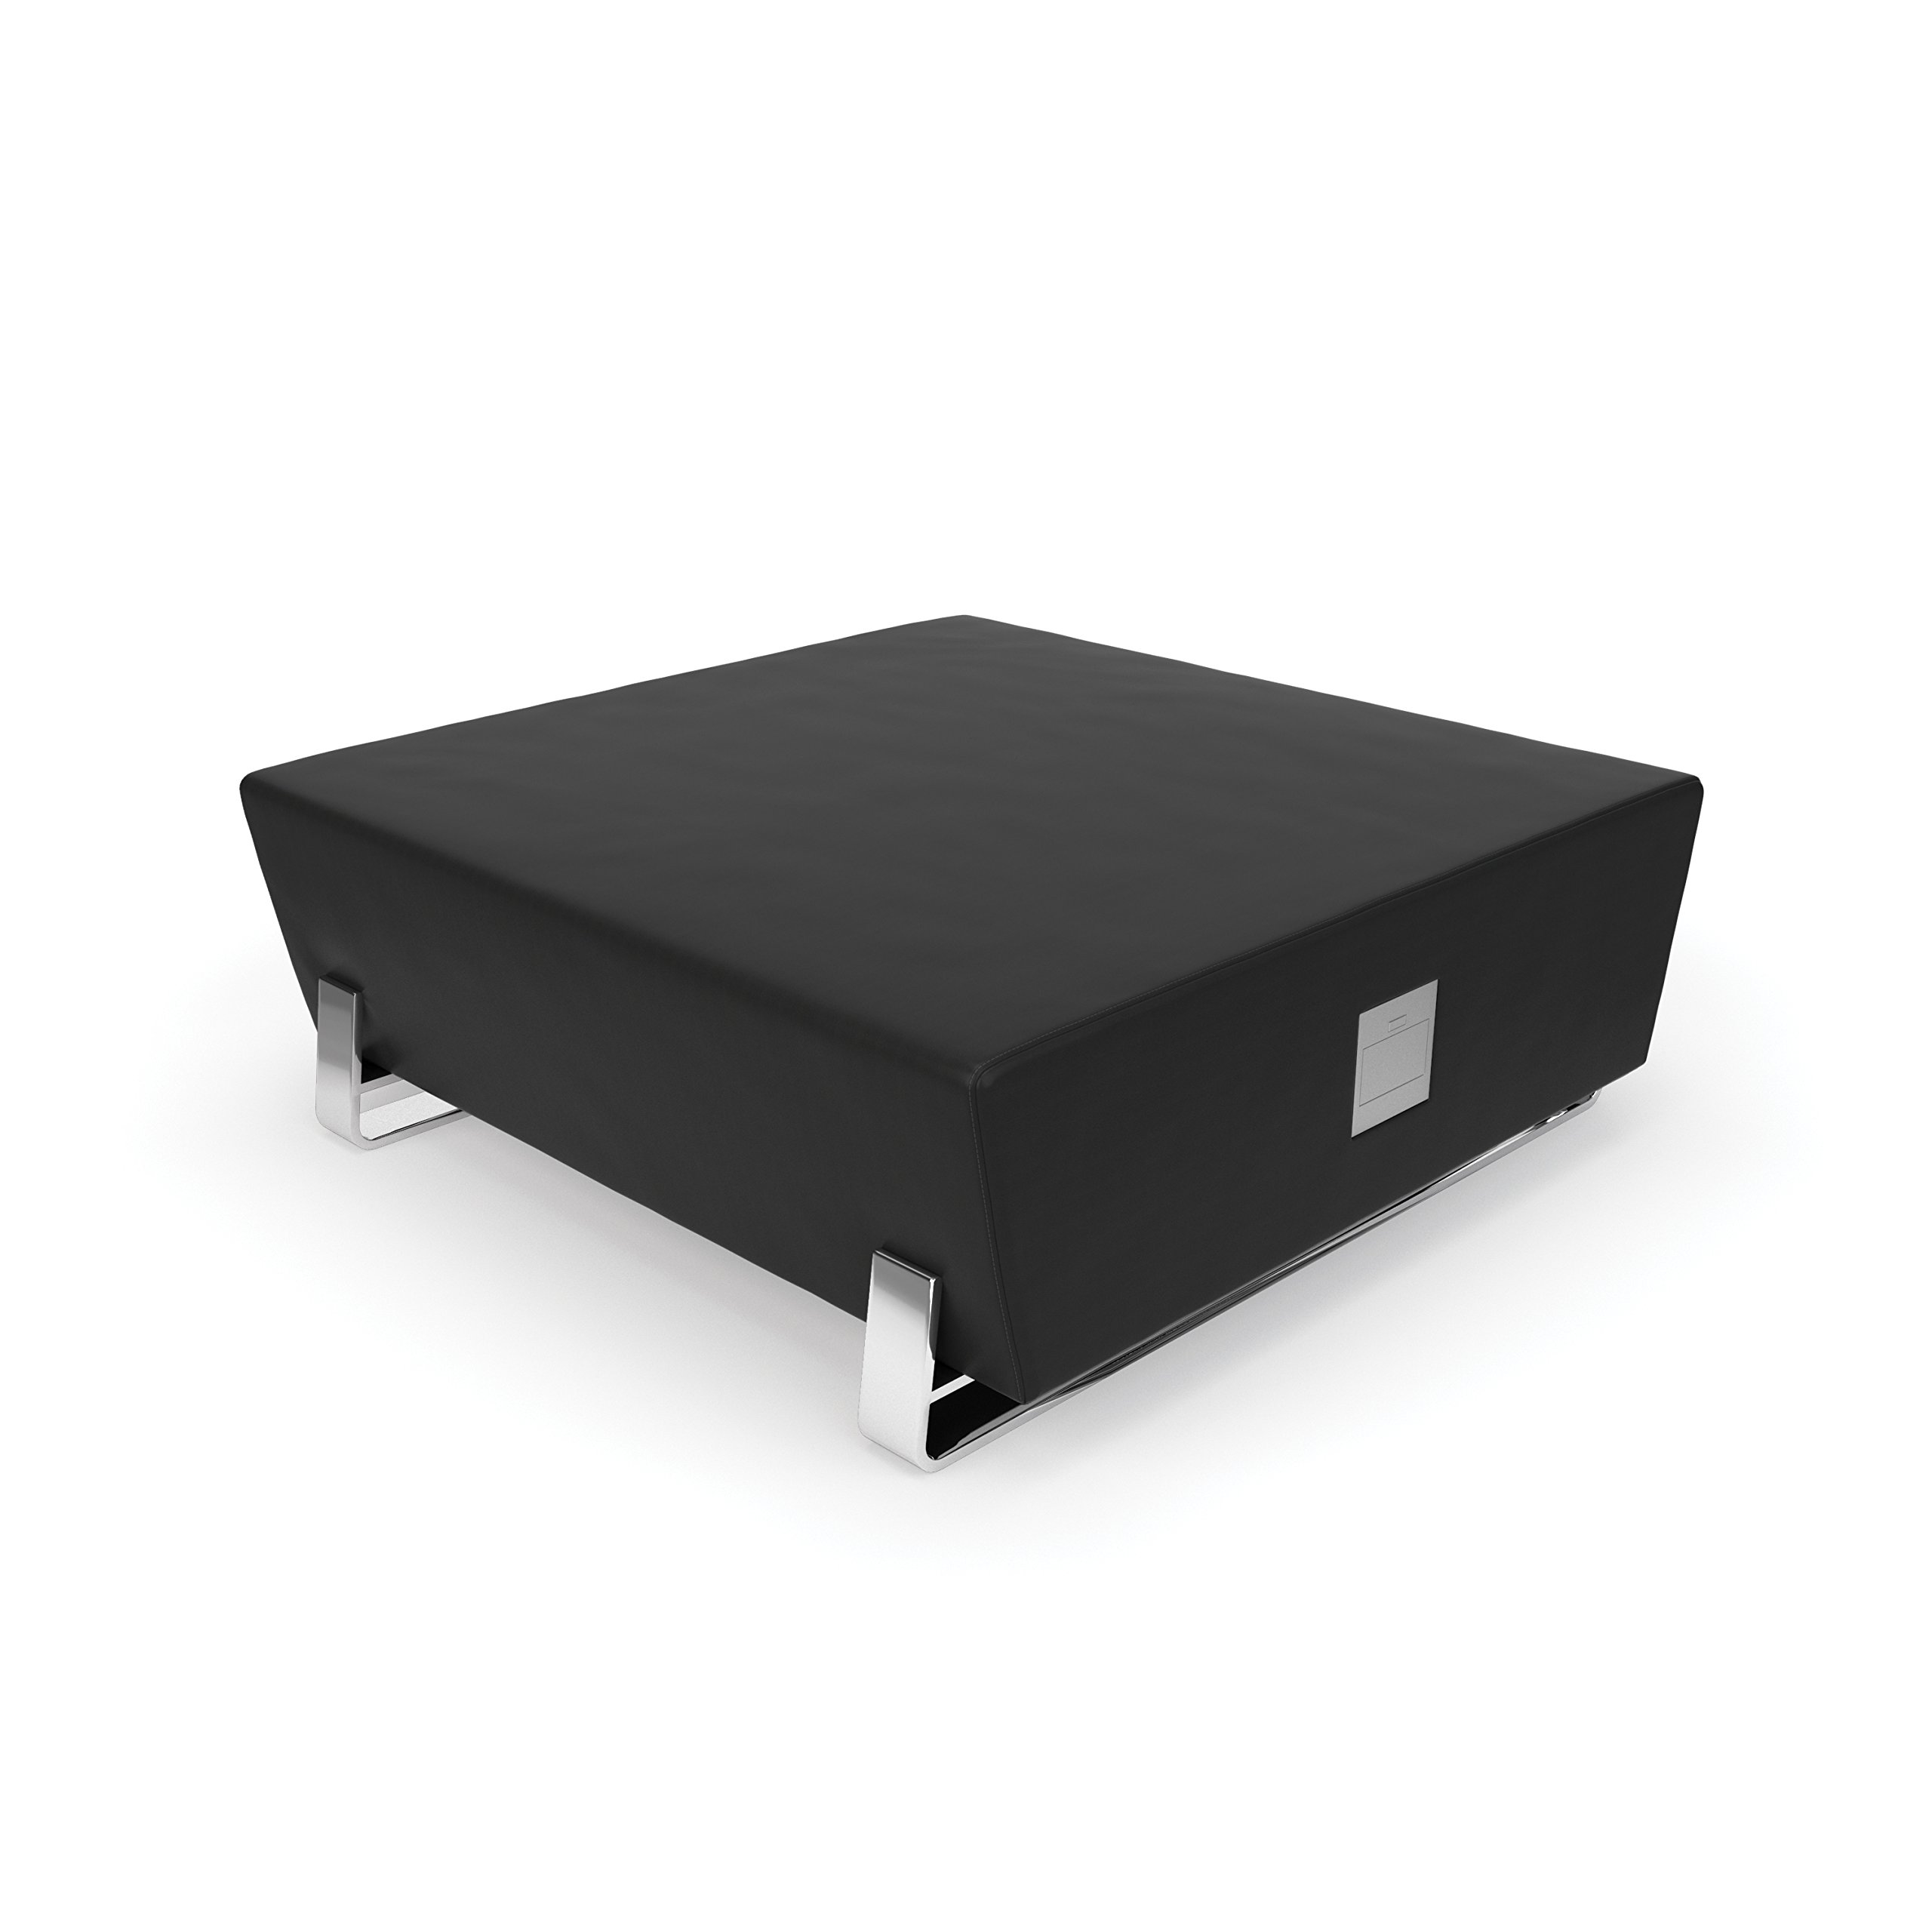 OFM Axis Series Model 4004C Contemporary Square Bench with USB Port, Textured Vinyl with Chrome Base, Midnight